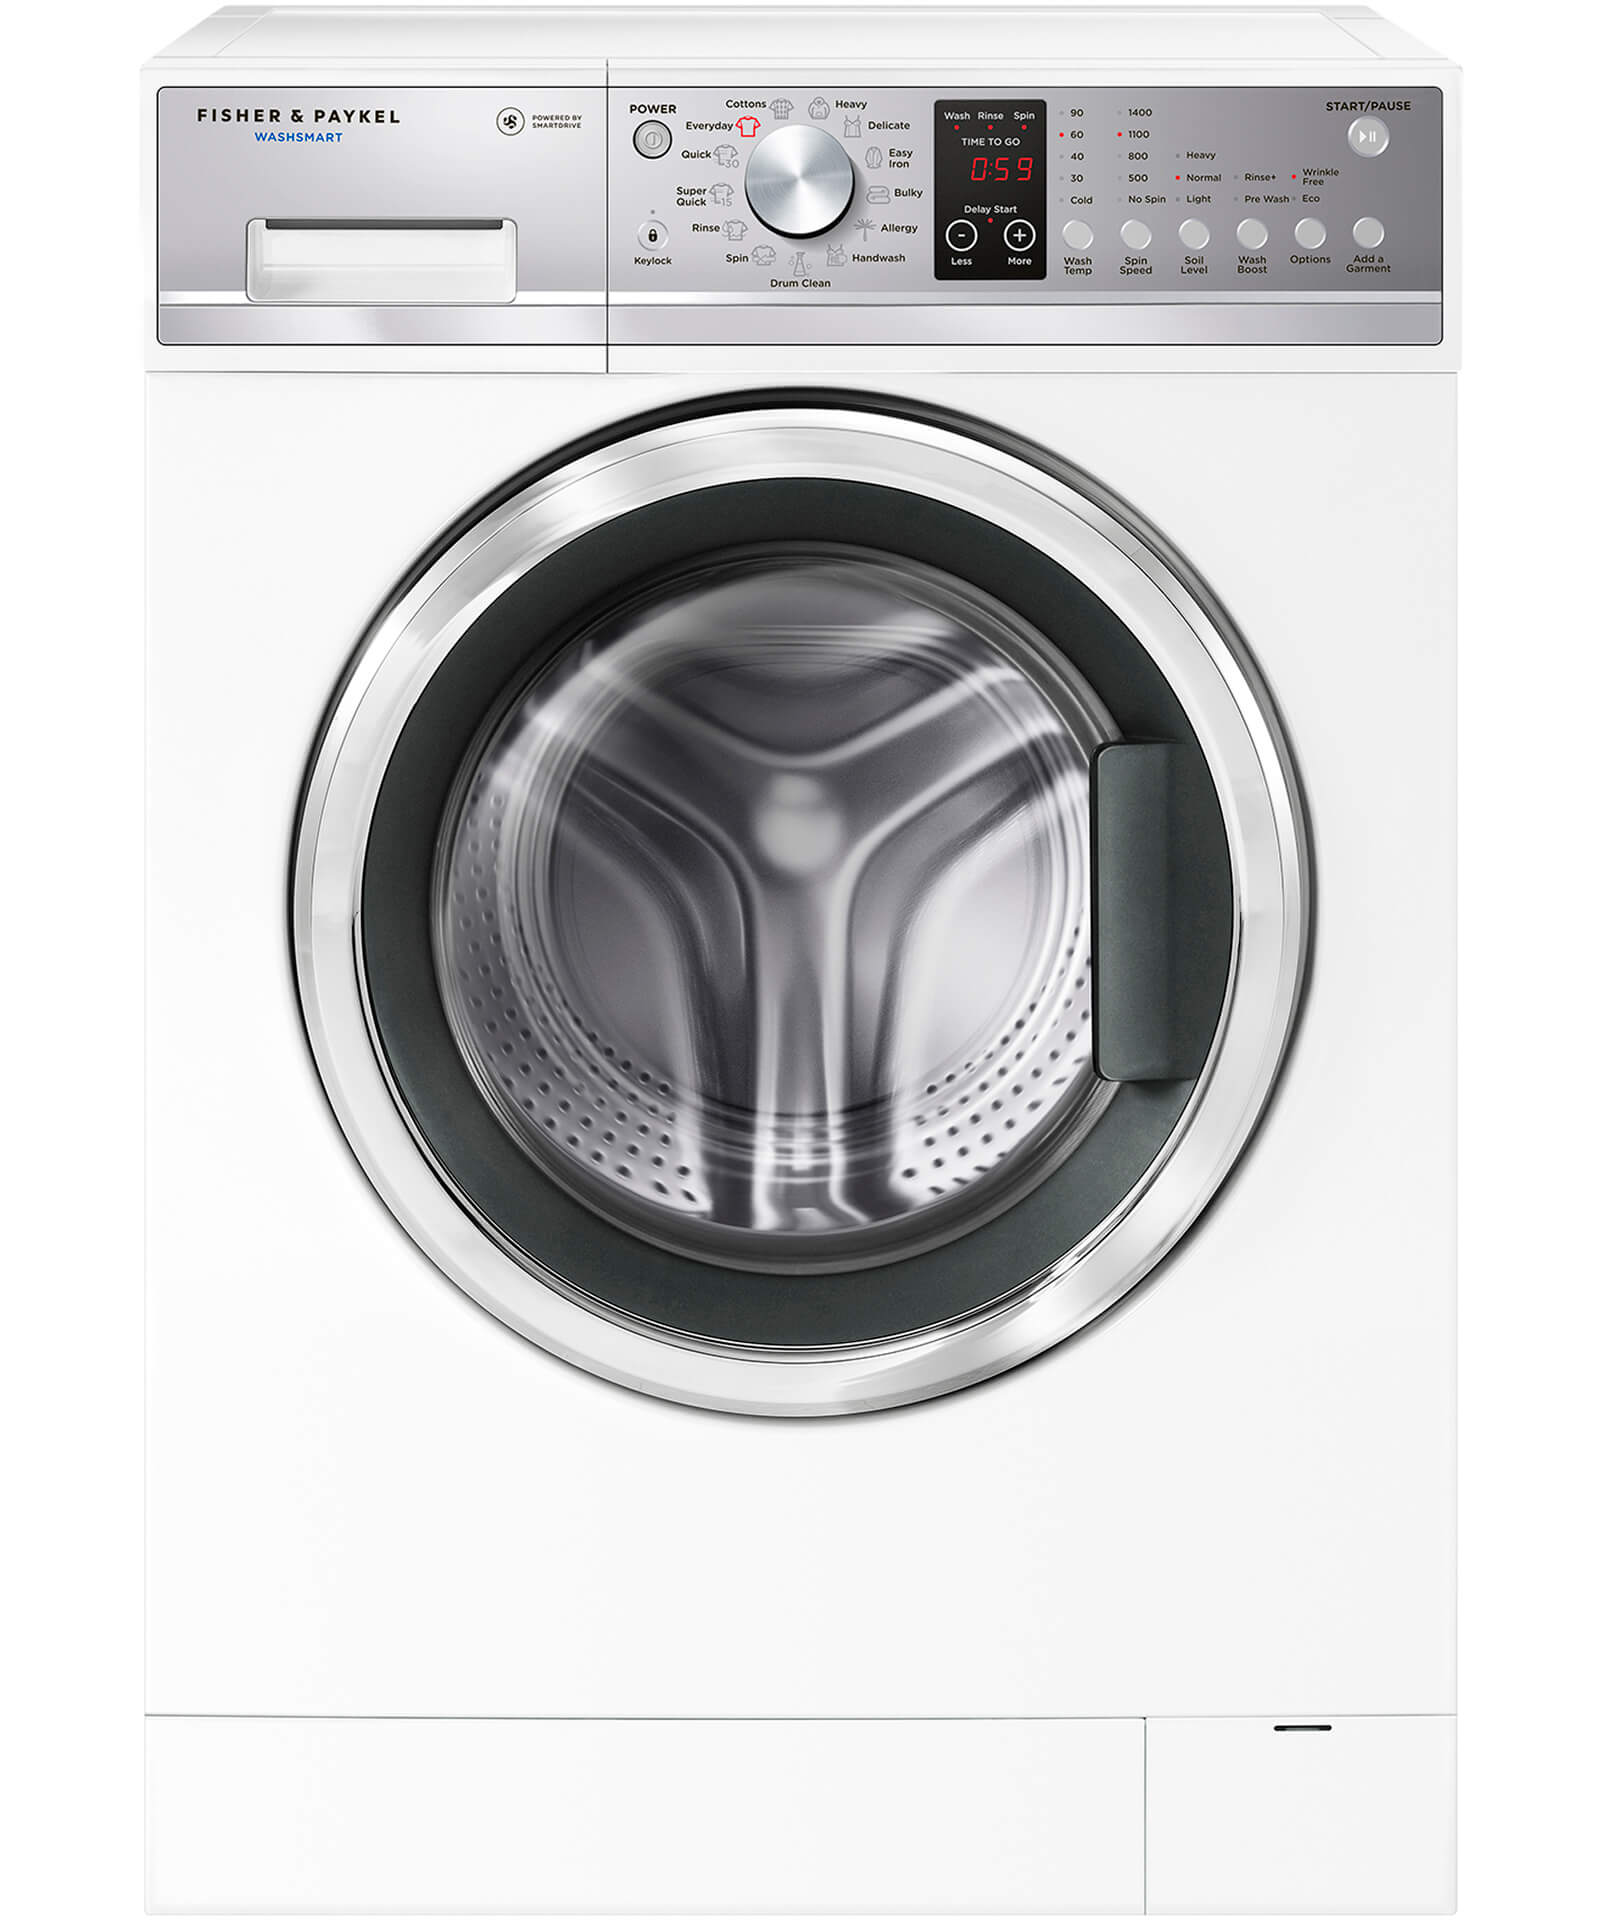 hight resolution of wh8560p2 washsmart 8 5kg 93254